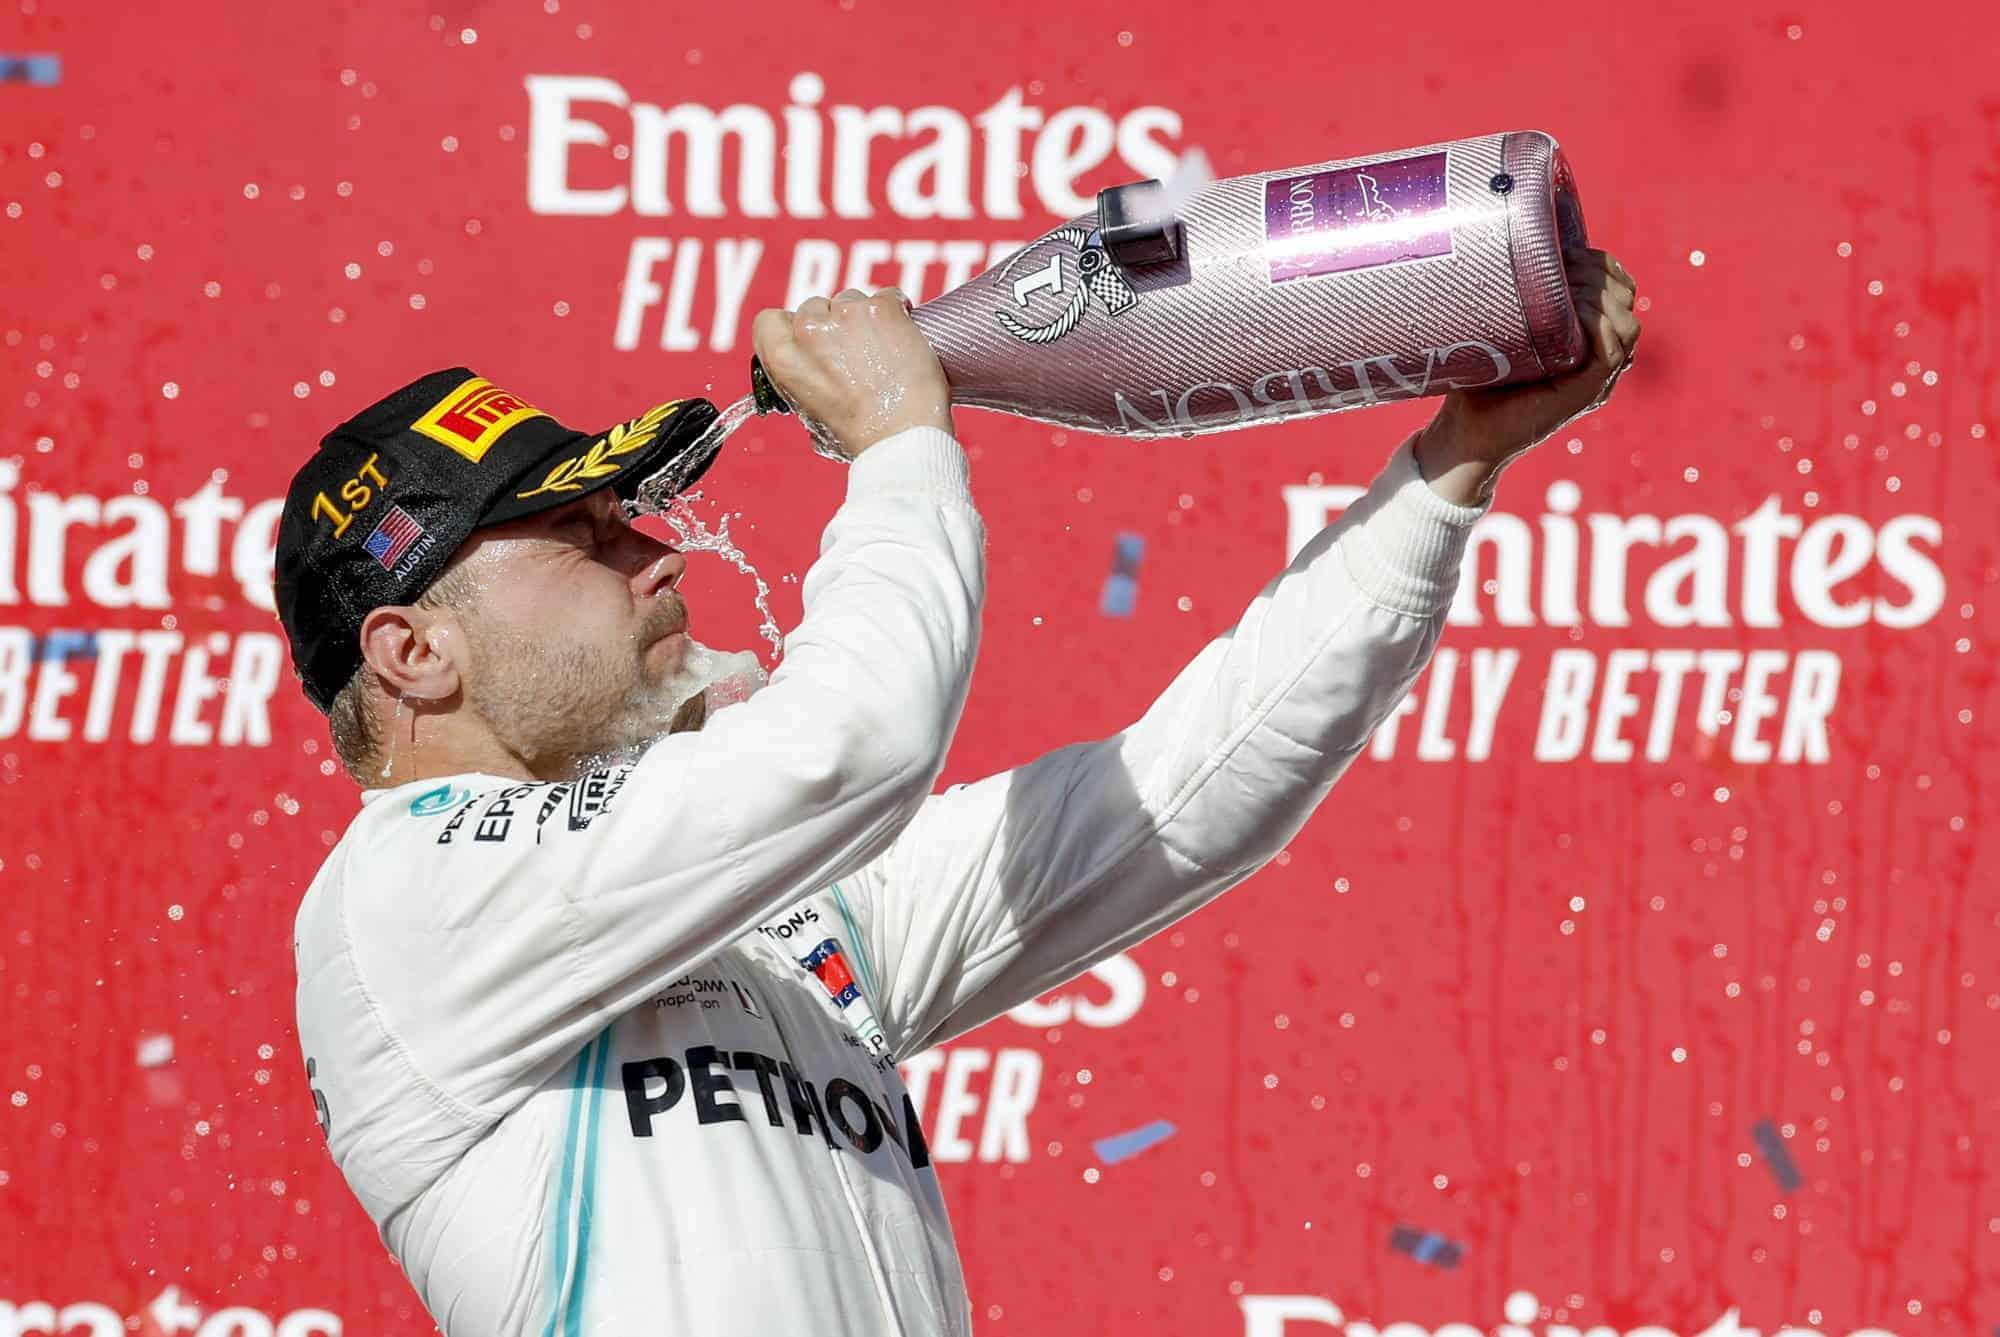 Bottas Mercedes USA GP F1 2019 Austin on the podium champagne Photo Daimler